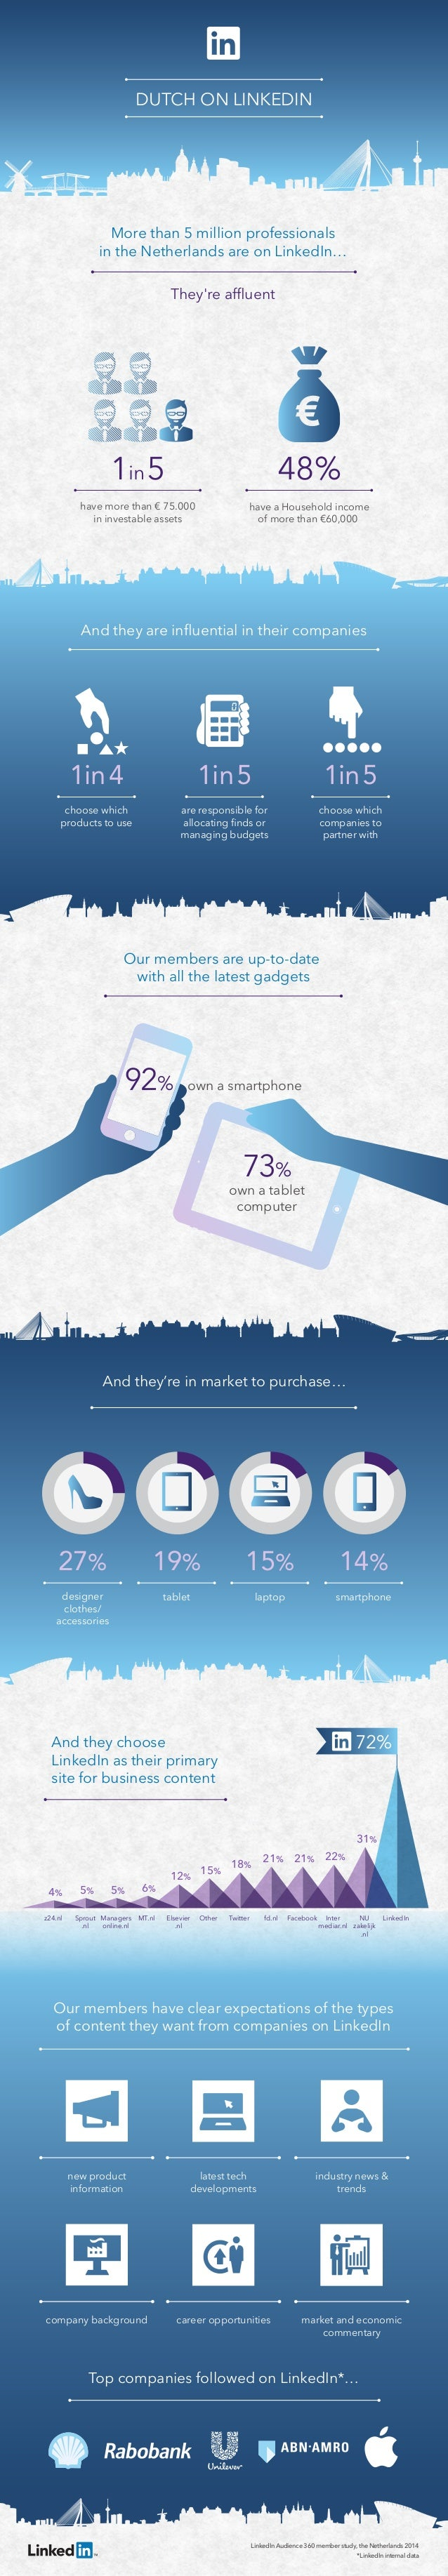 own a tablet computer 73% 92% own a smartphone And they choose LinkedIn as their primary site for business content LinkedI...